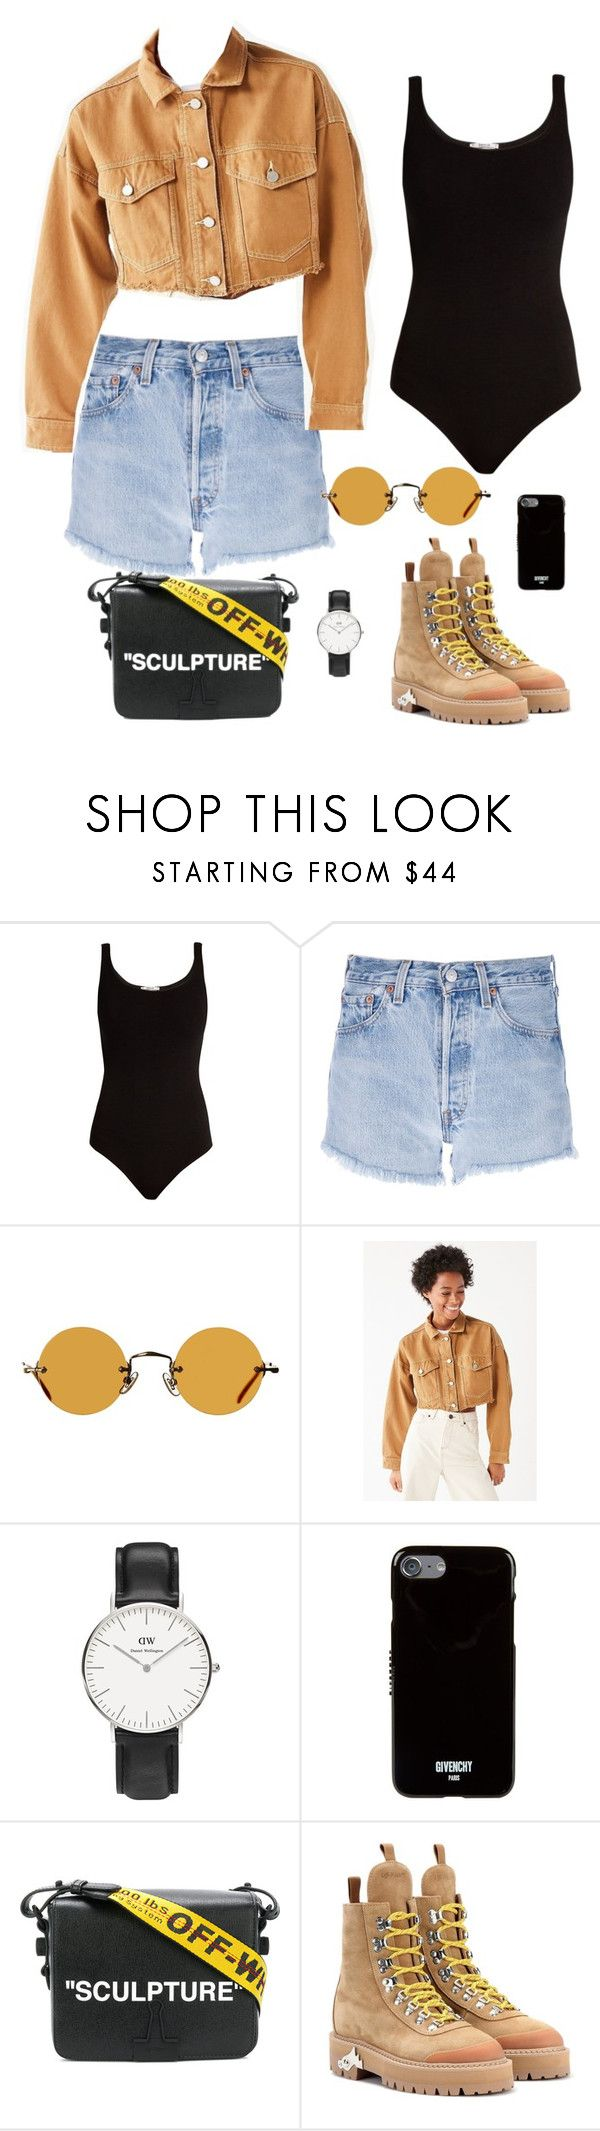 """Untitled #196"" by carolina11297 ❤ liked on Polyvore featuring Wolford, Levi's, Hakusan, Urban Outfitters, Daniel Wellington, Givenchy and Off-White"